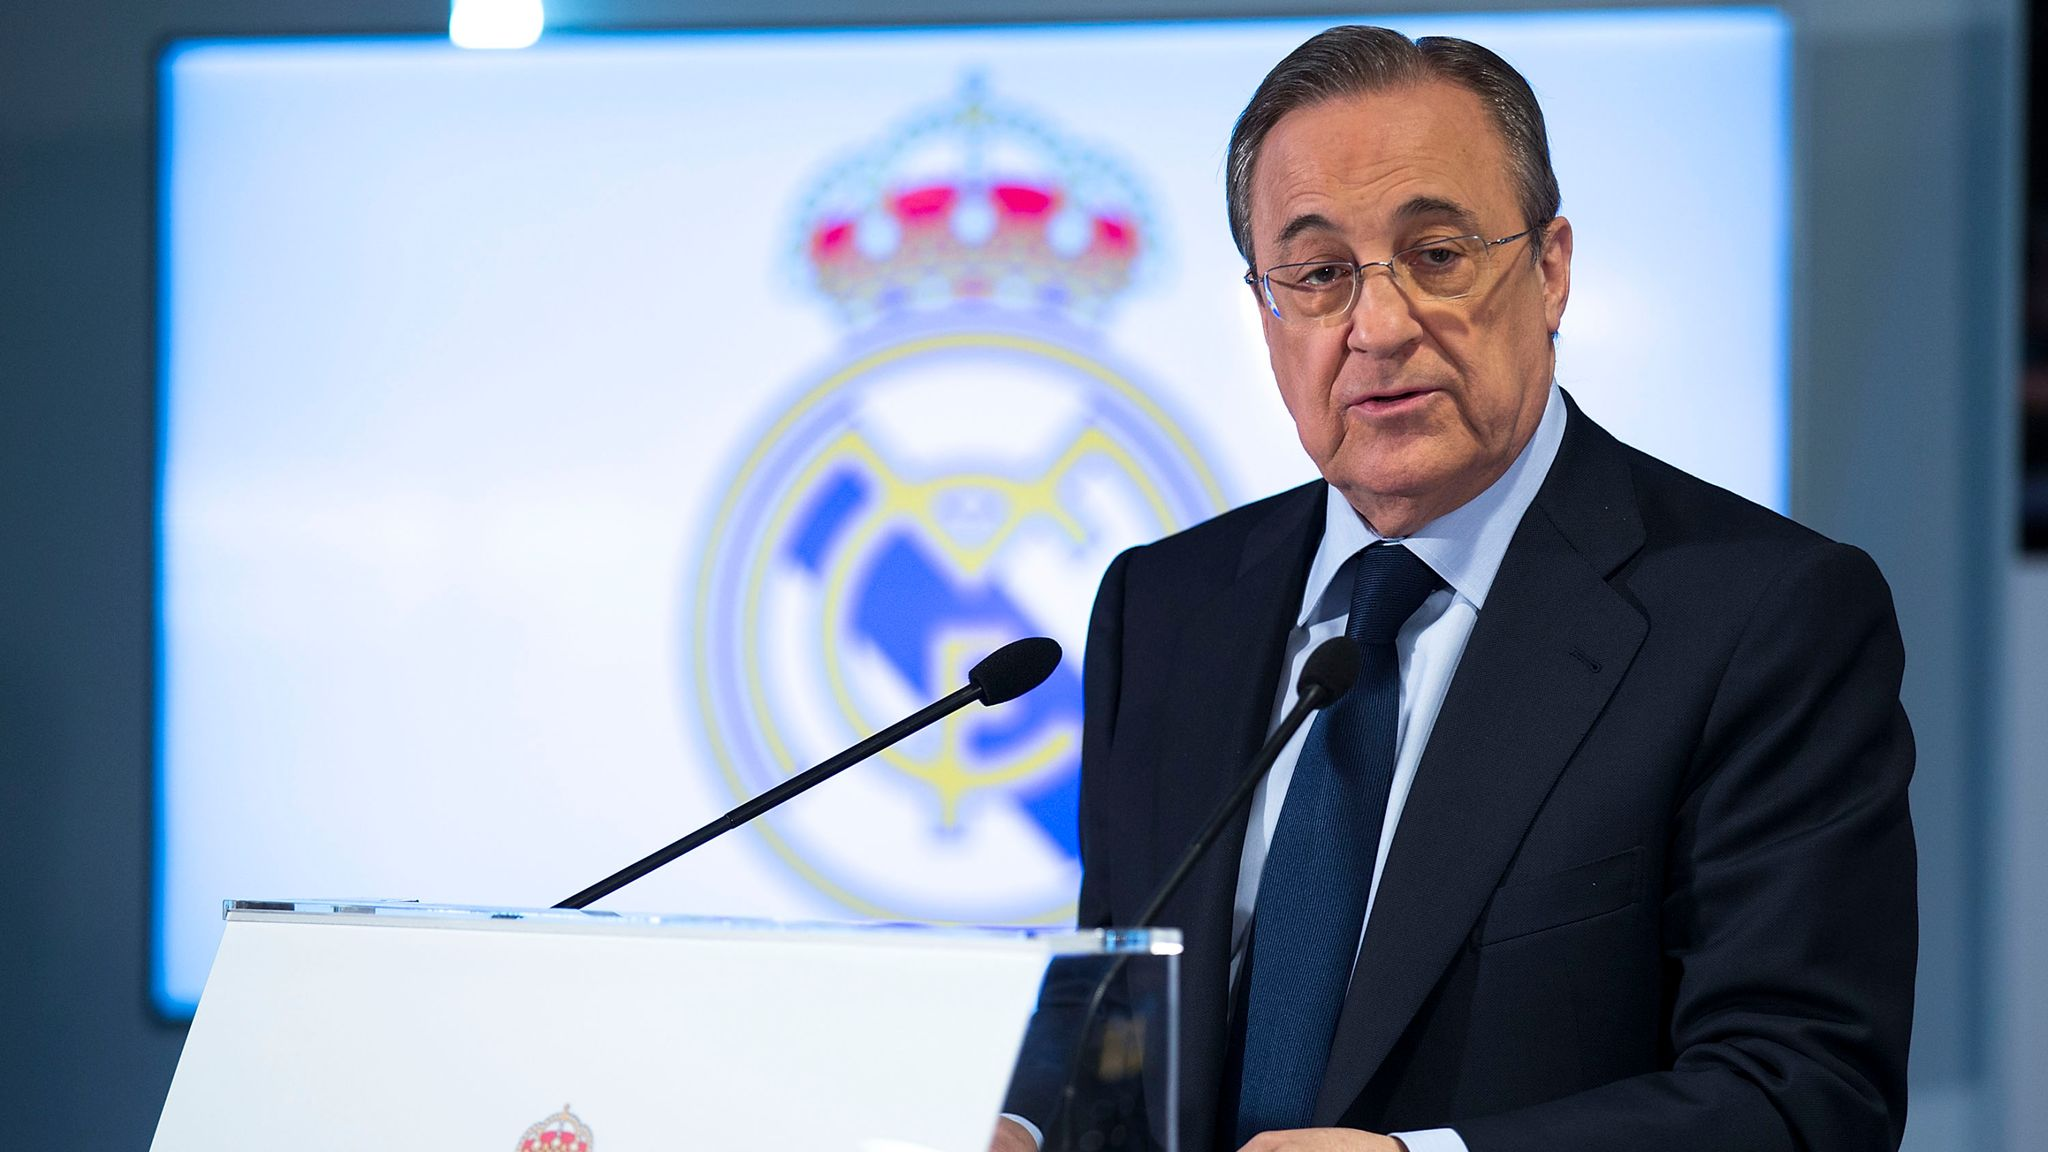 Florentino Perez to remain Real Madrid president until 2021 | Football News  | Sky Sports